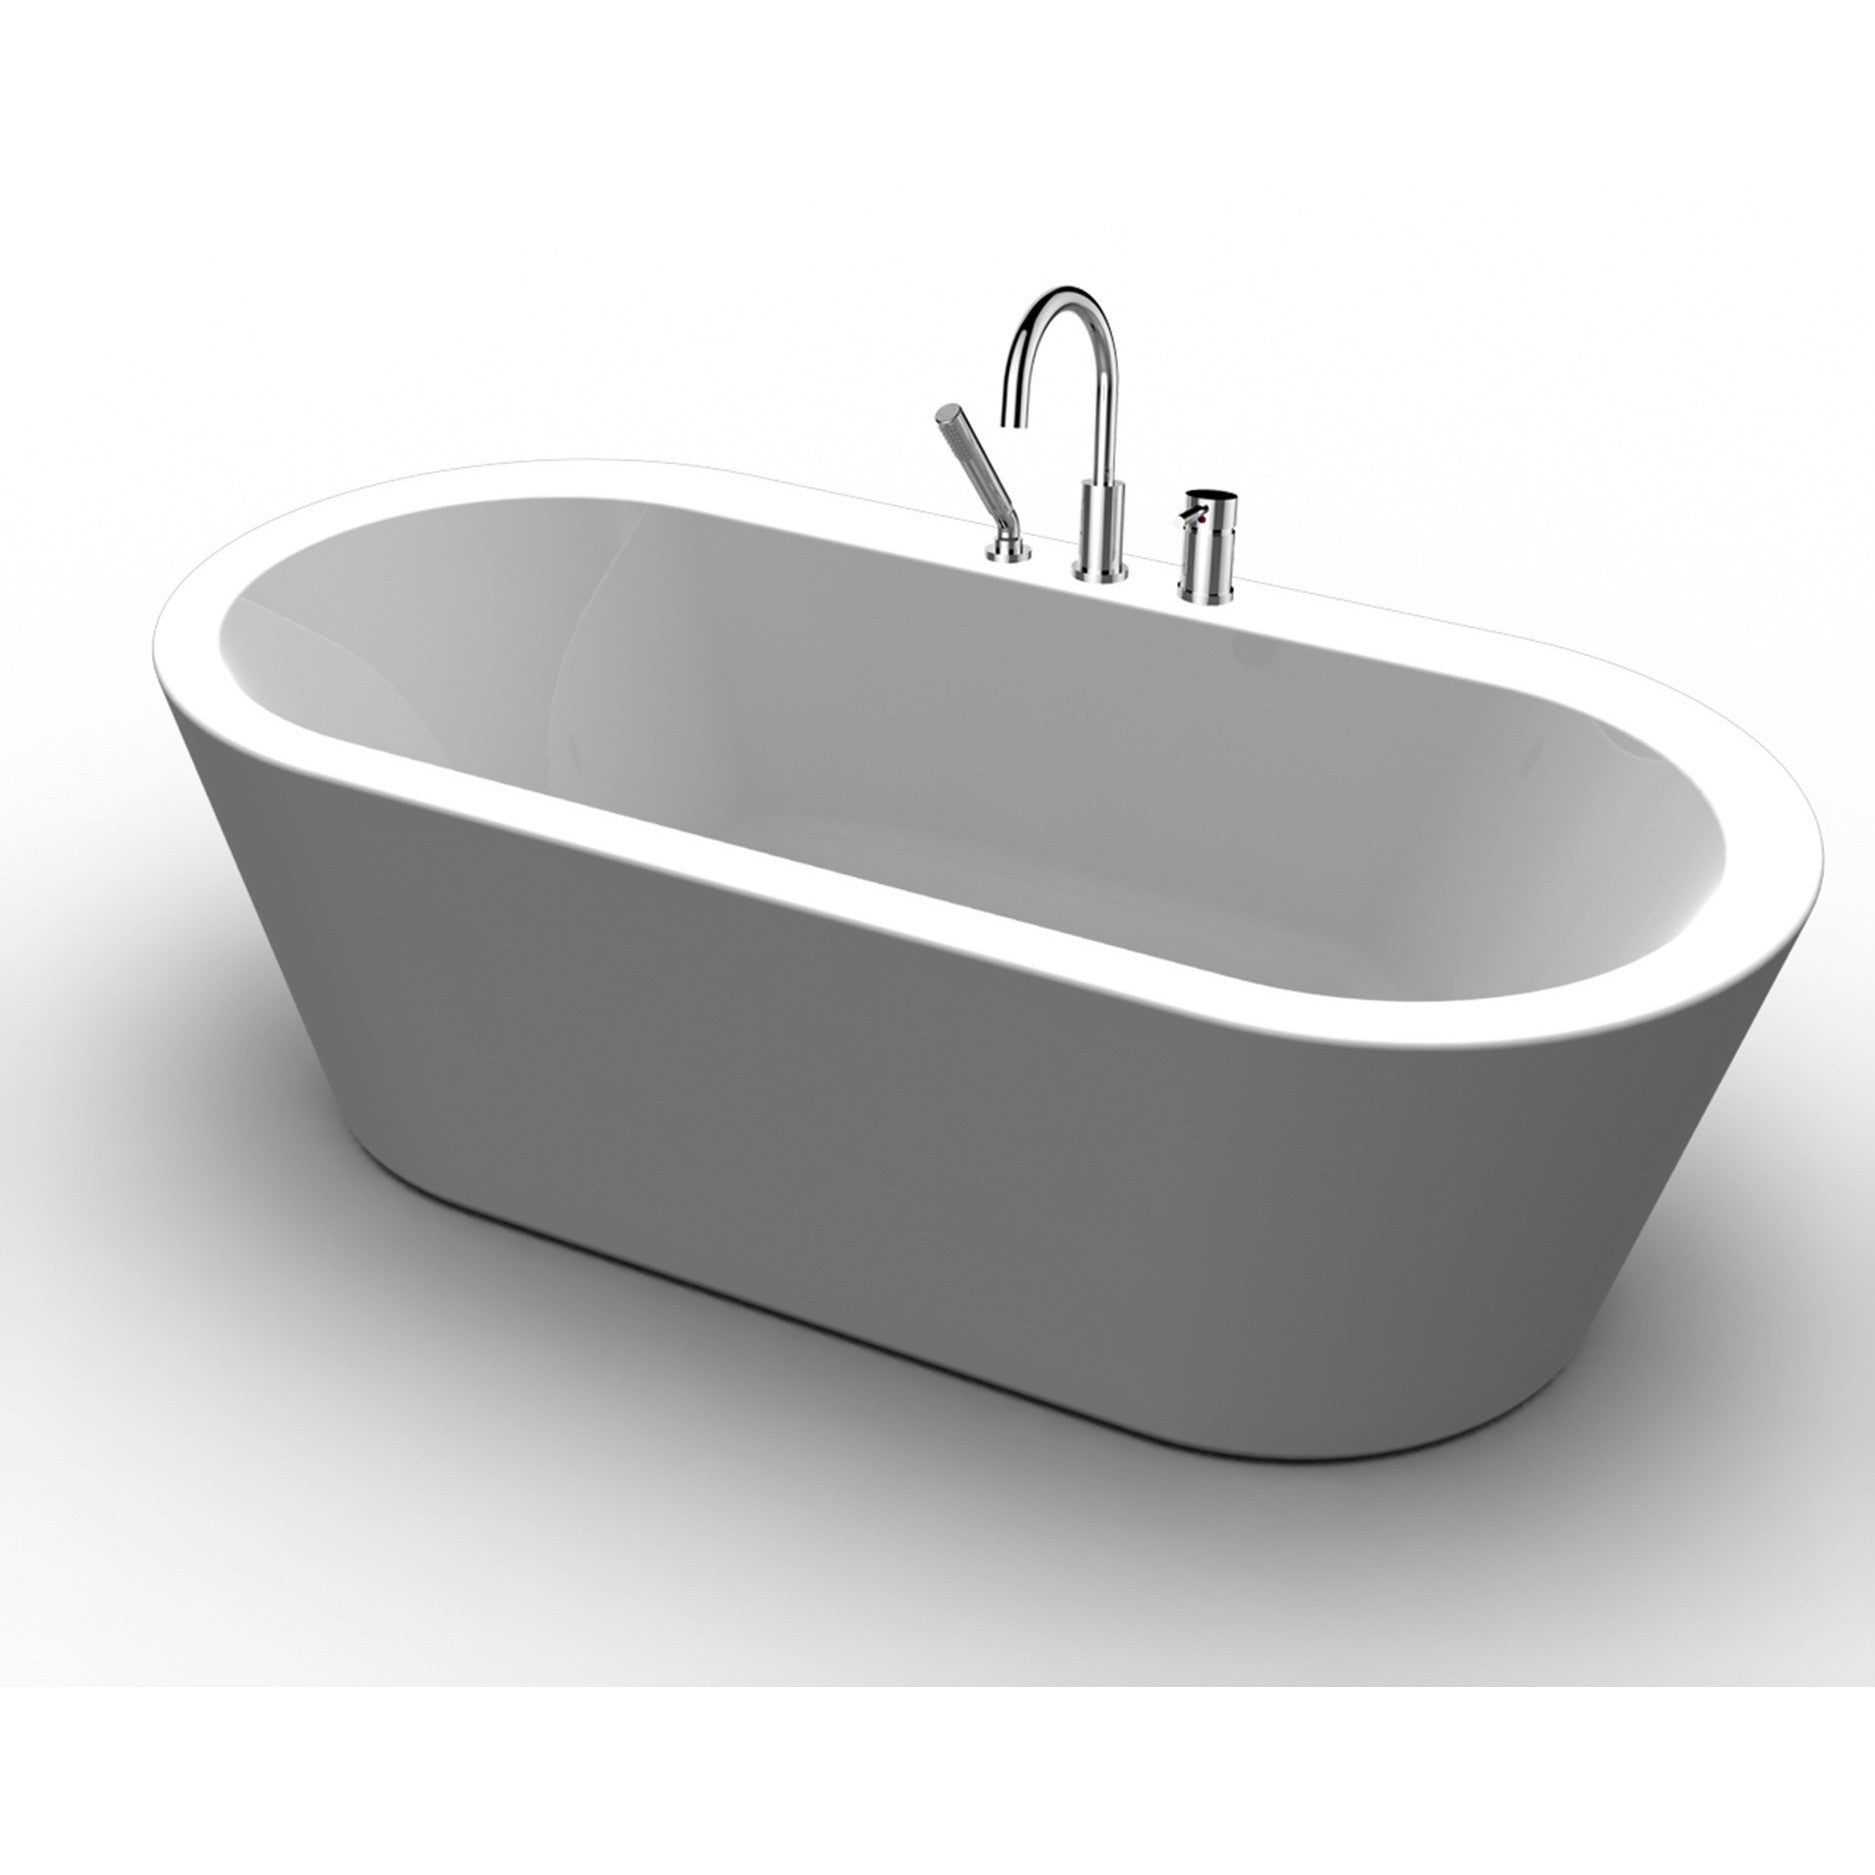 beckons crafted you long two american tub gaston this bathroom and hardware a acrylic stylishly comfortably to l generous freestanding standard soak of sheets